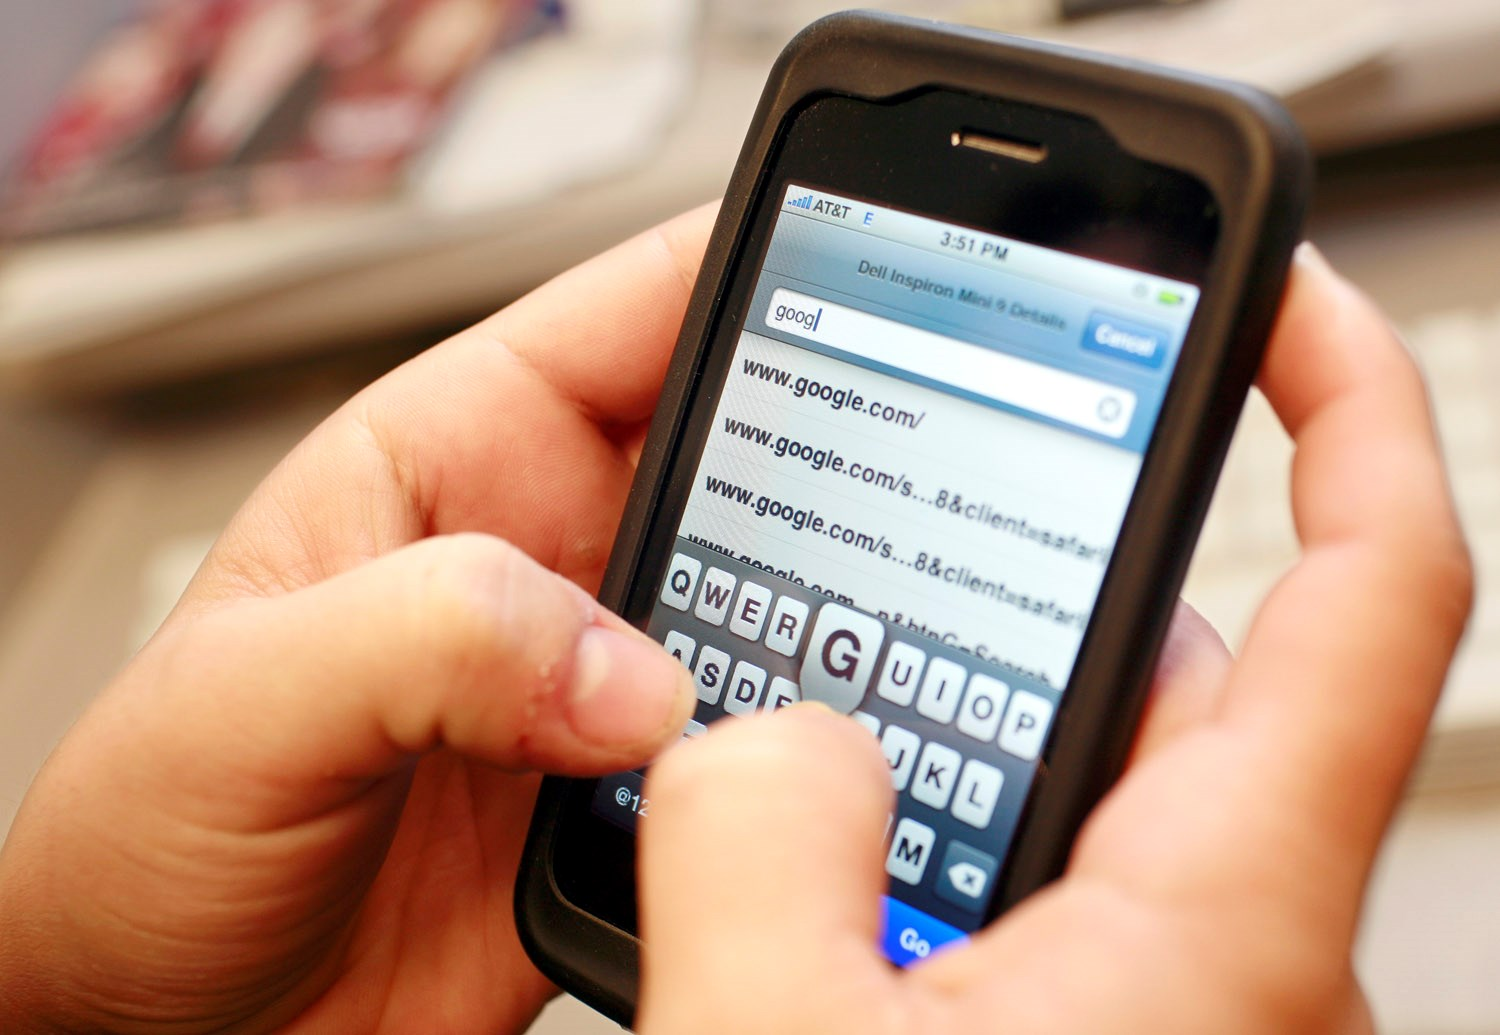 SIM card data recovery software recovers SMS Mobile